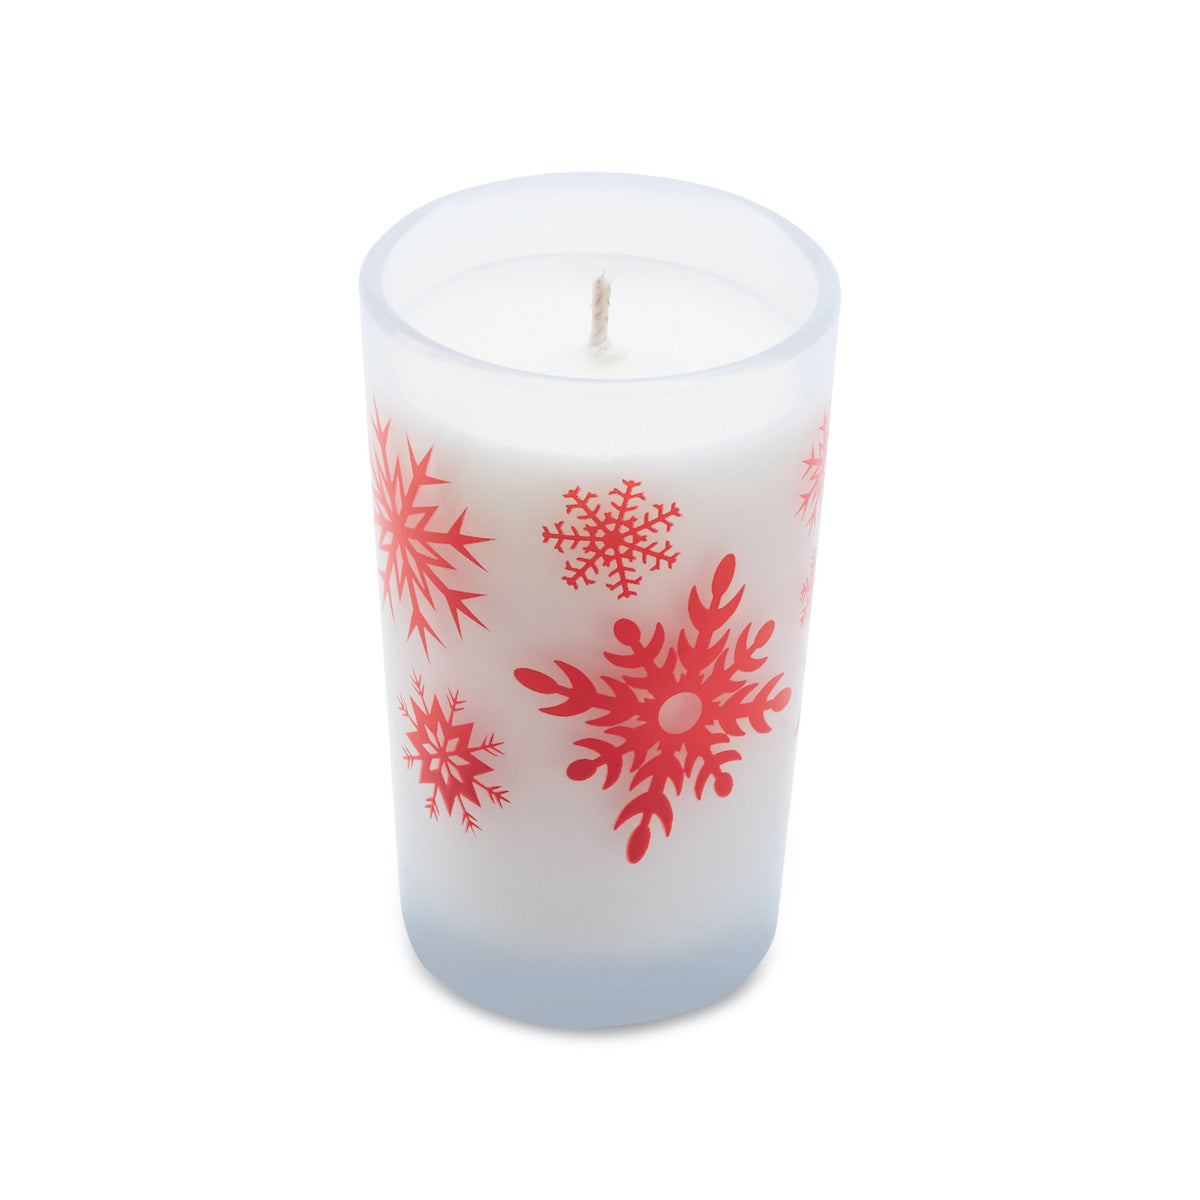 5.5oz Holiday Candle - Frosted White (Red Snowflakes)